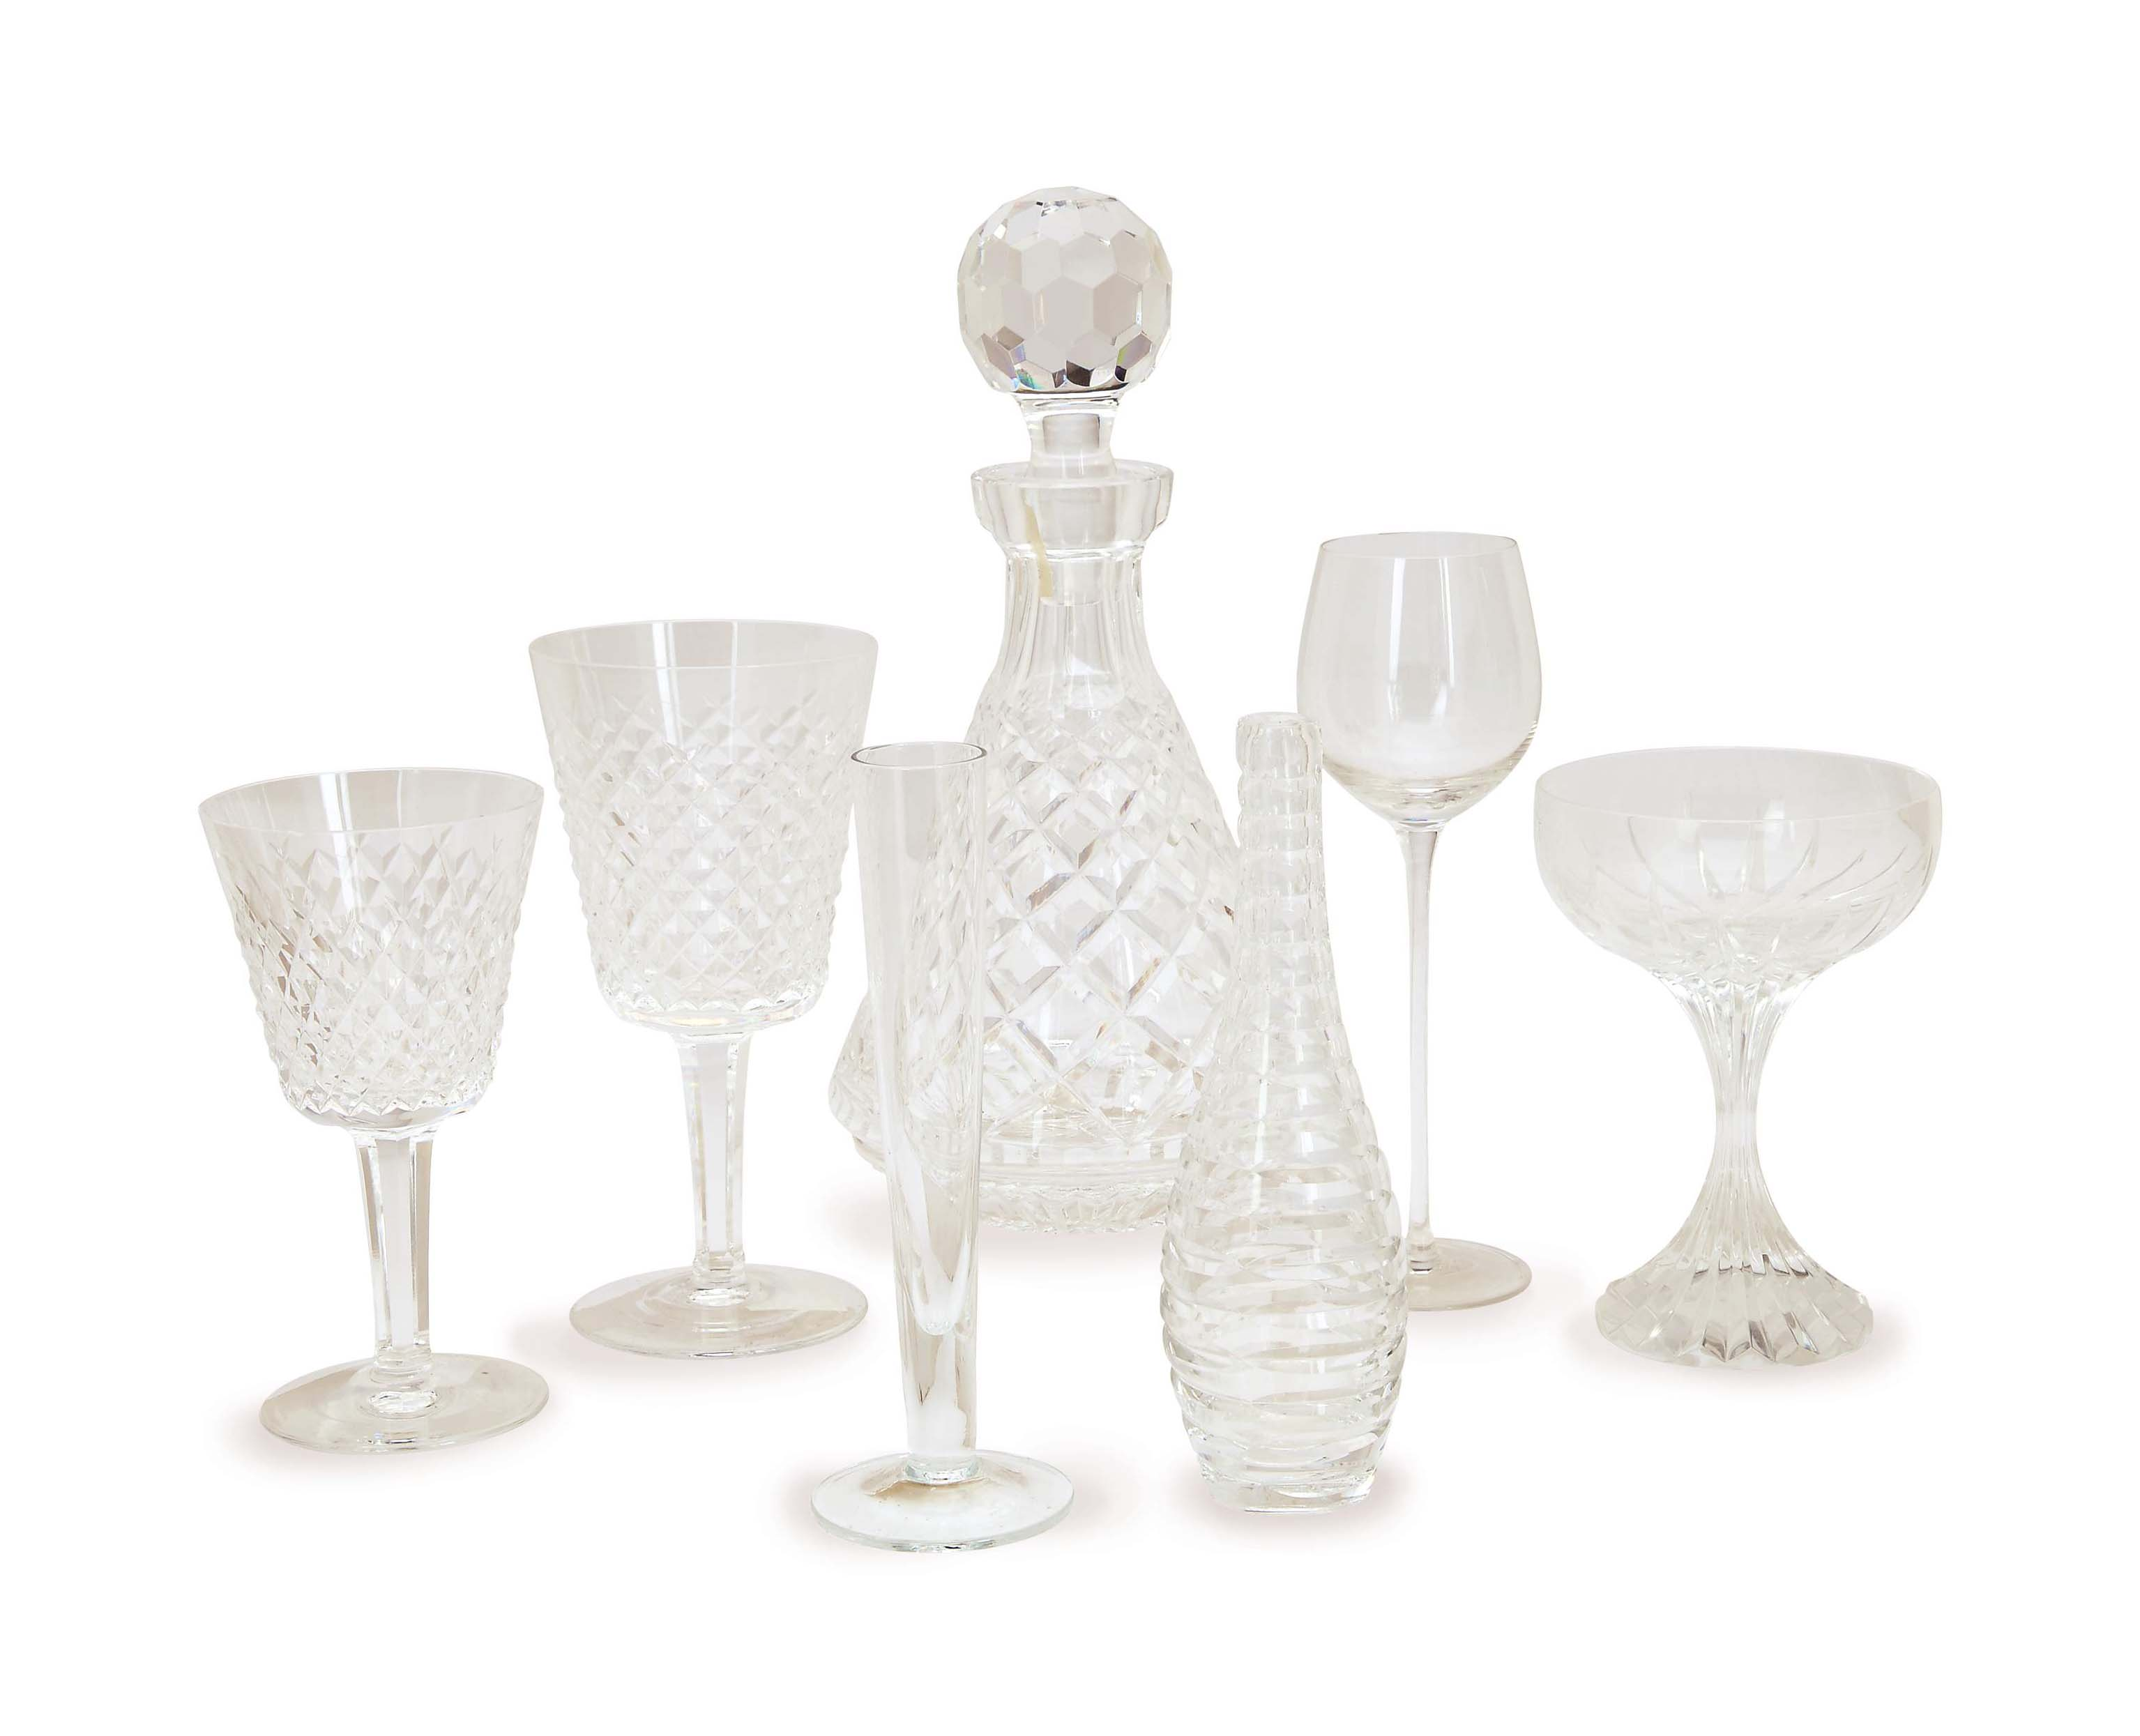 AN ASSEMBLED GROUP OF GLASS DRINKWARE,